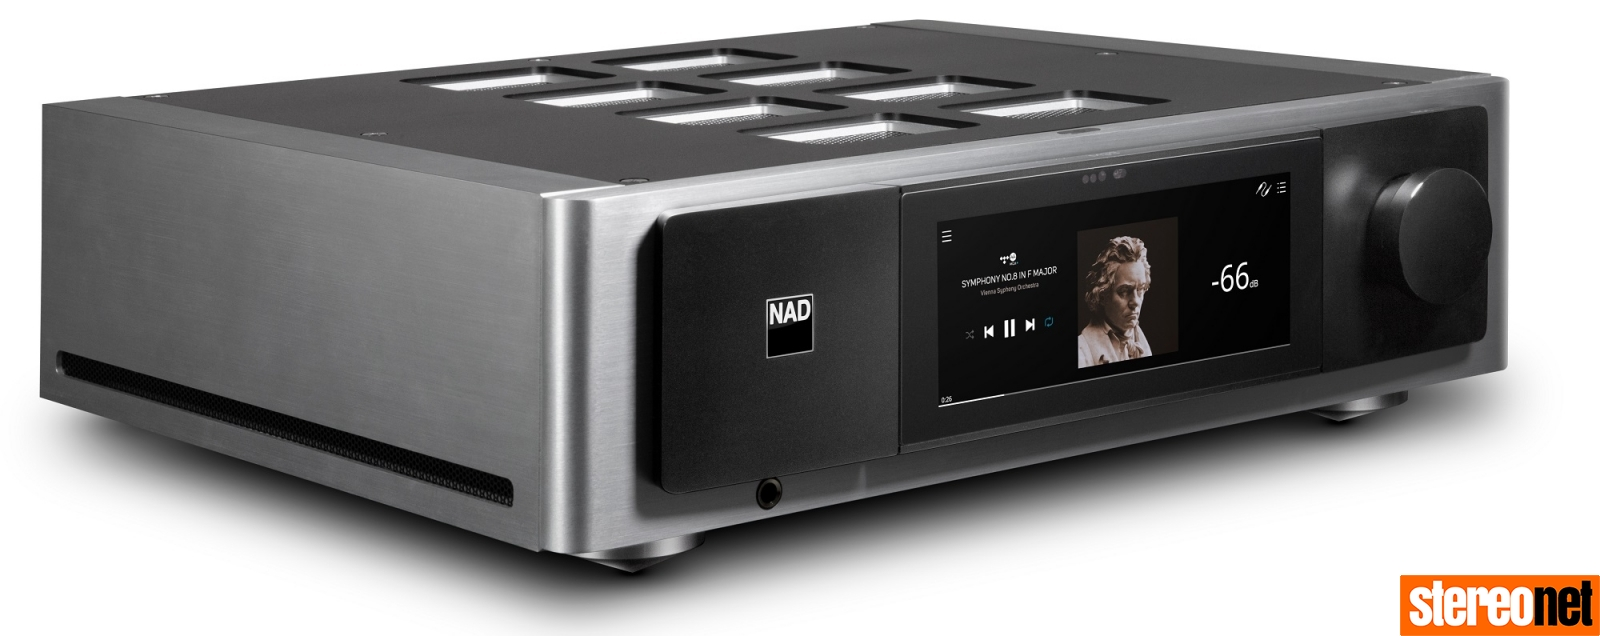 NAD M33 Master Series CES 2020